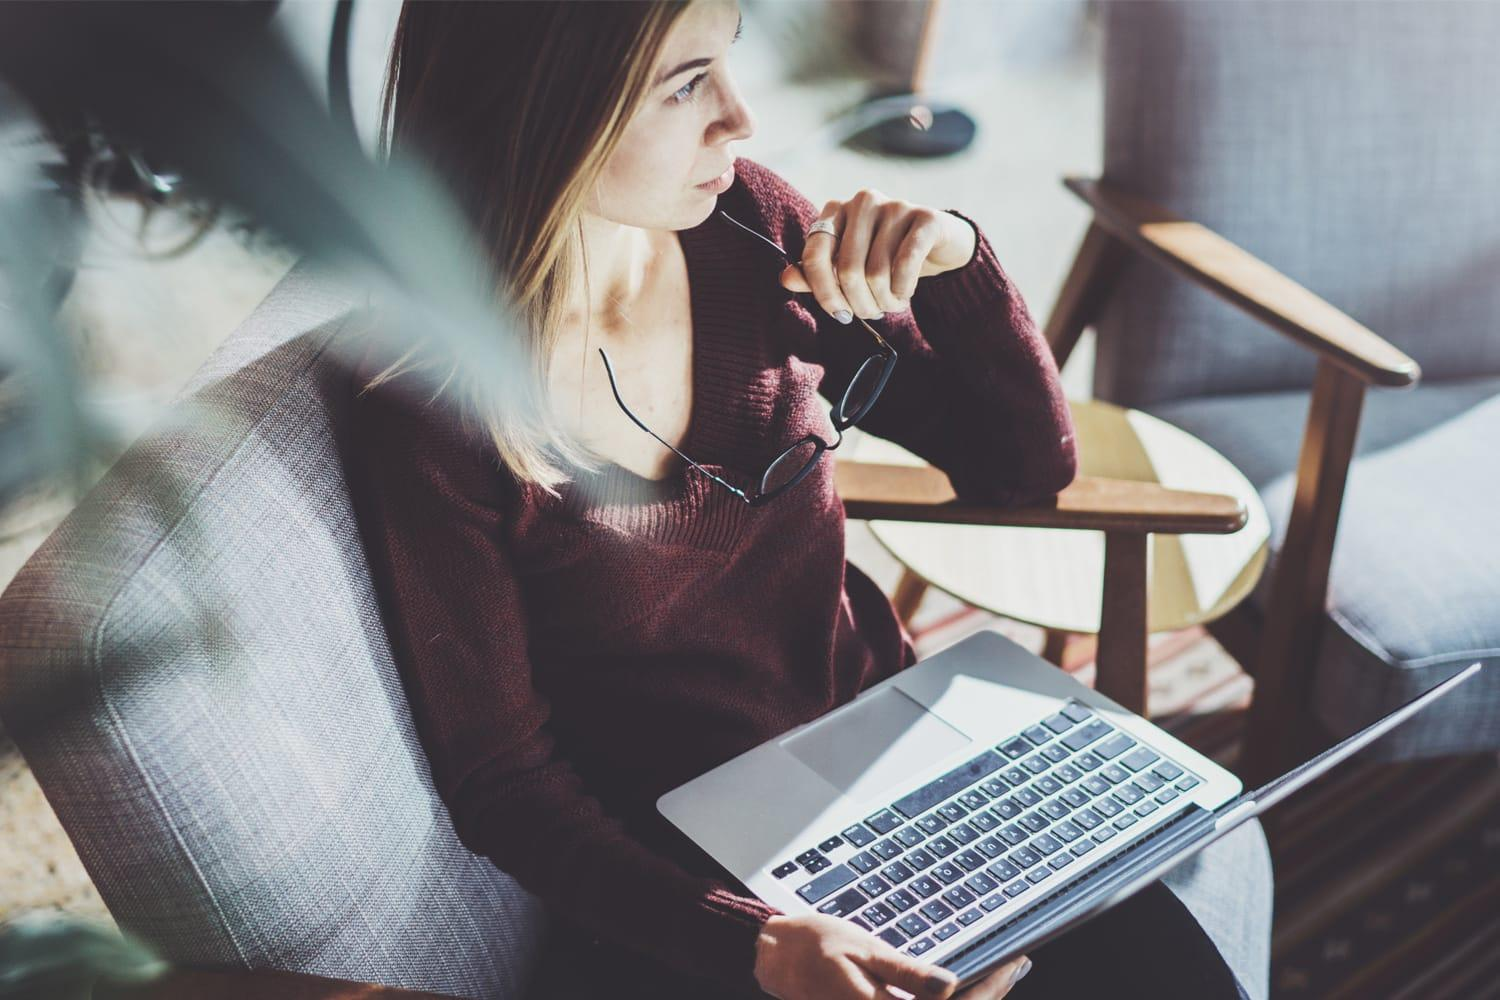 woman sitting in chair with laptop